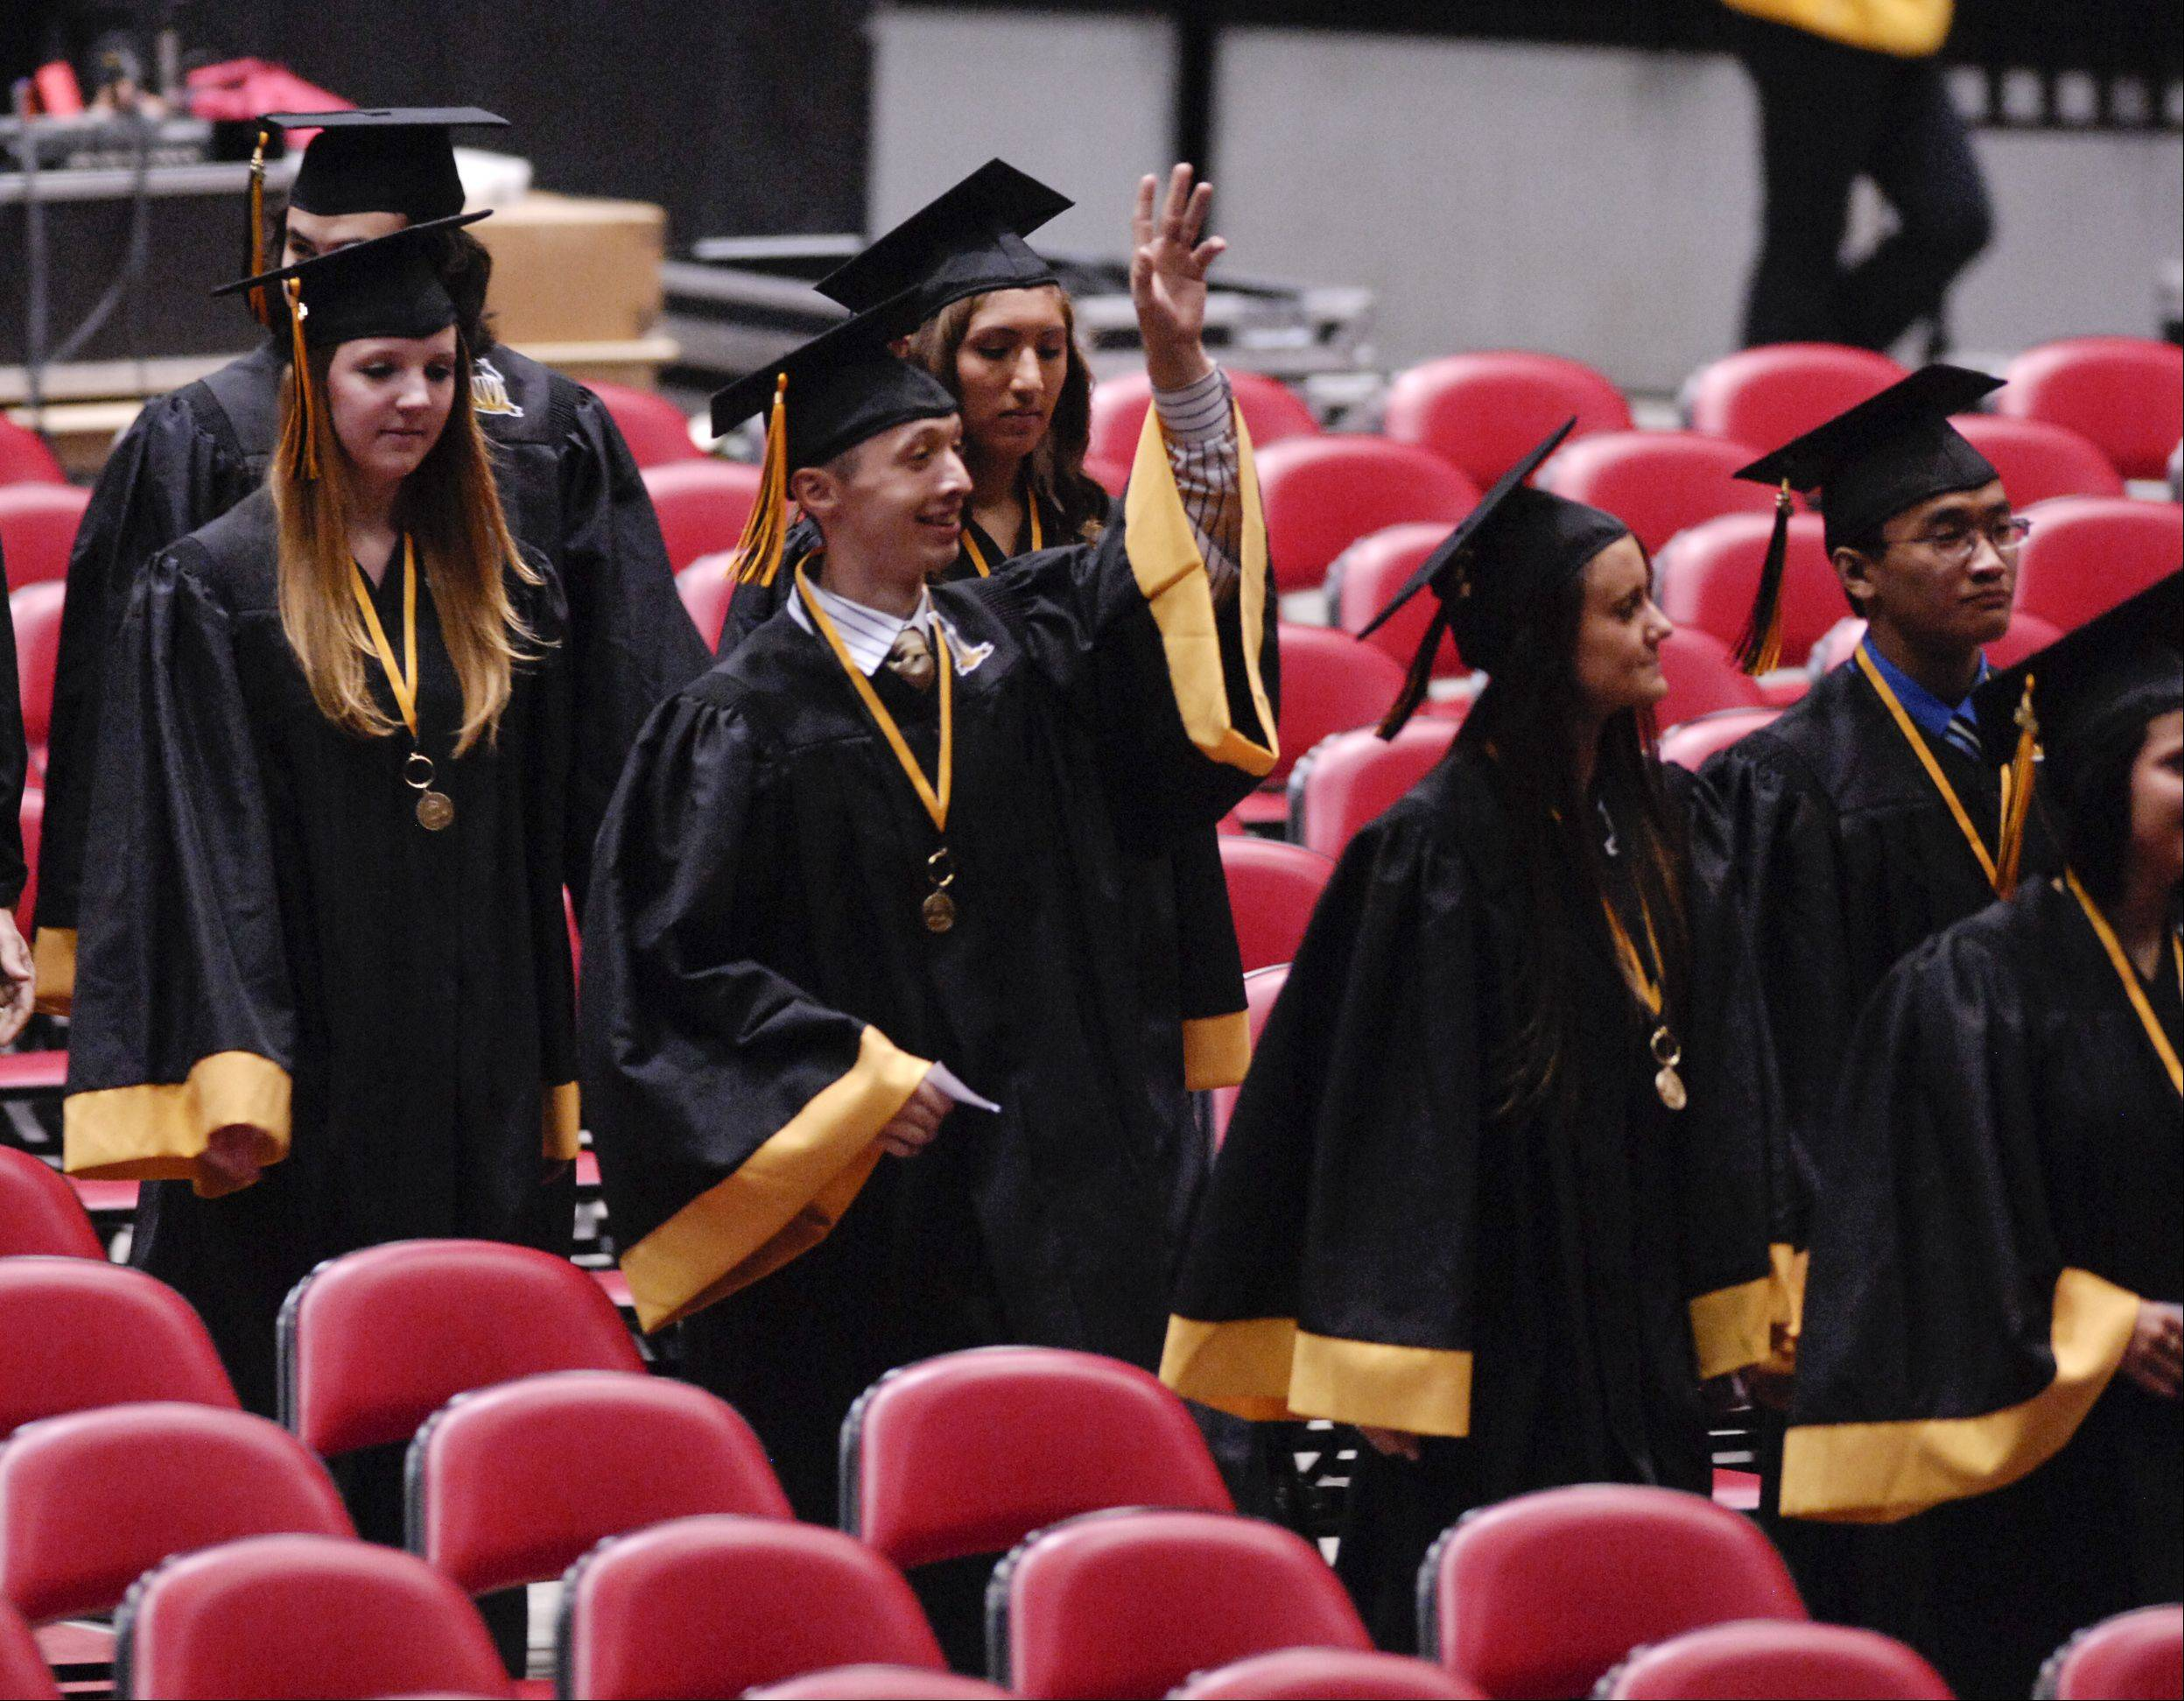 Images from the Metea Valley High School graduation on Sunday, May 26 at the NIU Convocation Center in DeKalb.